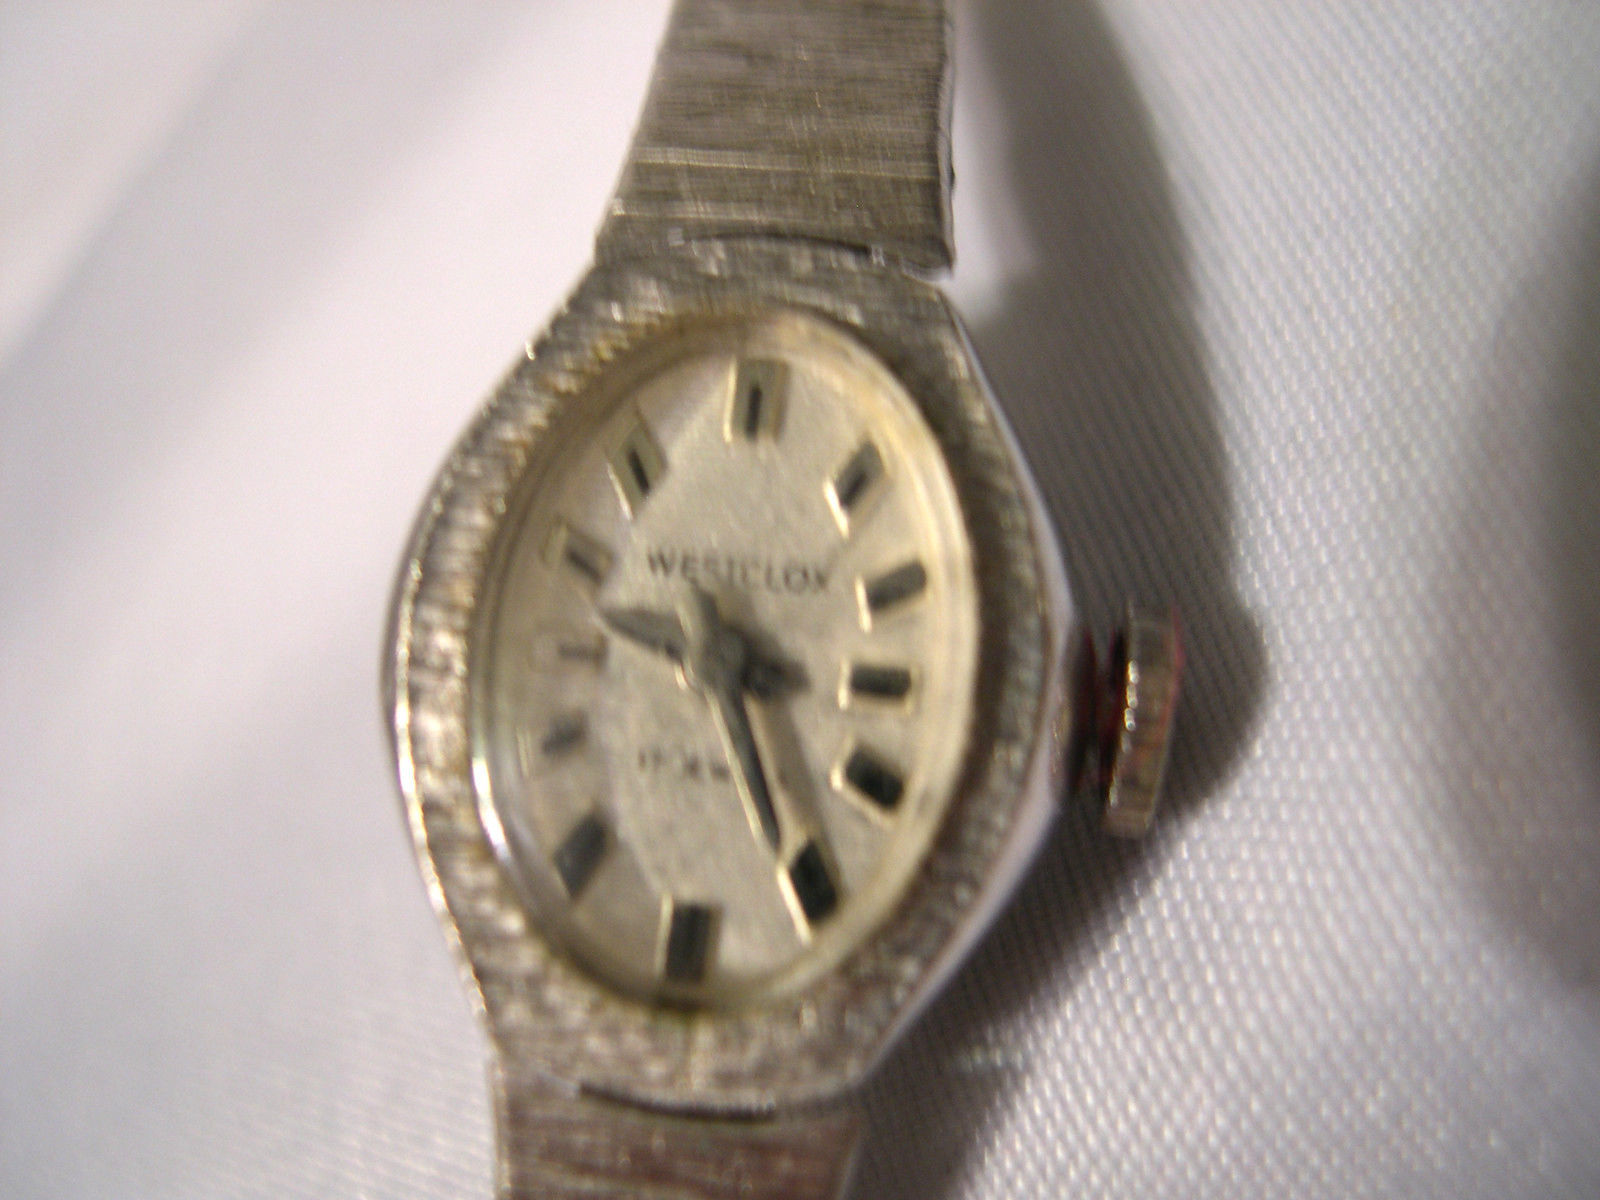 L27, Westclox, 17 Jewel Ladies Watch, 10 R.G.P. Kestenmade Silver Band, Vintage